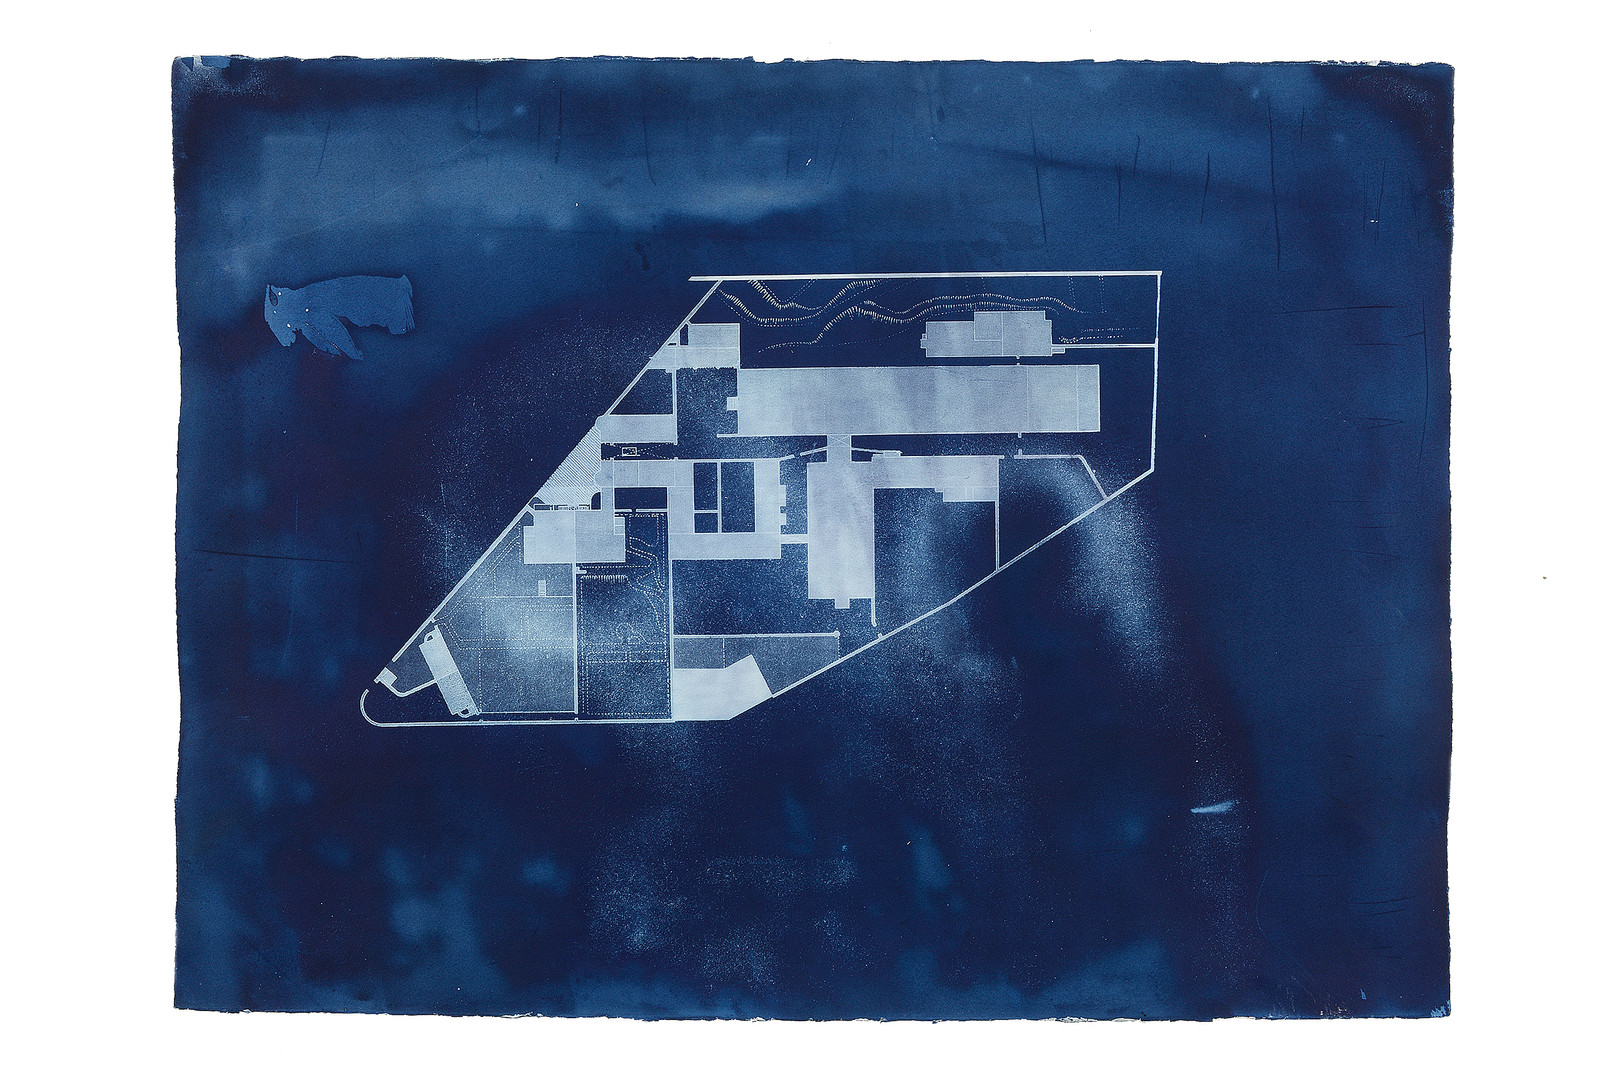 """5 0. 4 7 4 9°  N,  4. 7 2 8 6°  W  [E D I T I O N  1]  2 0 1 4 C Y A N O T Y P E  2 3  x  3 3 """"   A series of cyanotypes of Bodmin Jail made in conjunction with the project '12 Hour Cell'. This collaboration with Lucy Crump shows floor plans of the prison before and after it's extension to accommodate more inmates."""